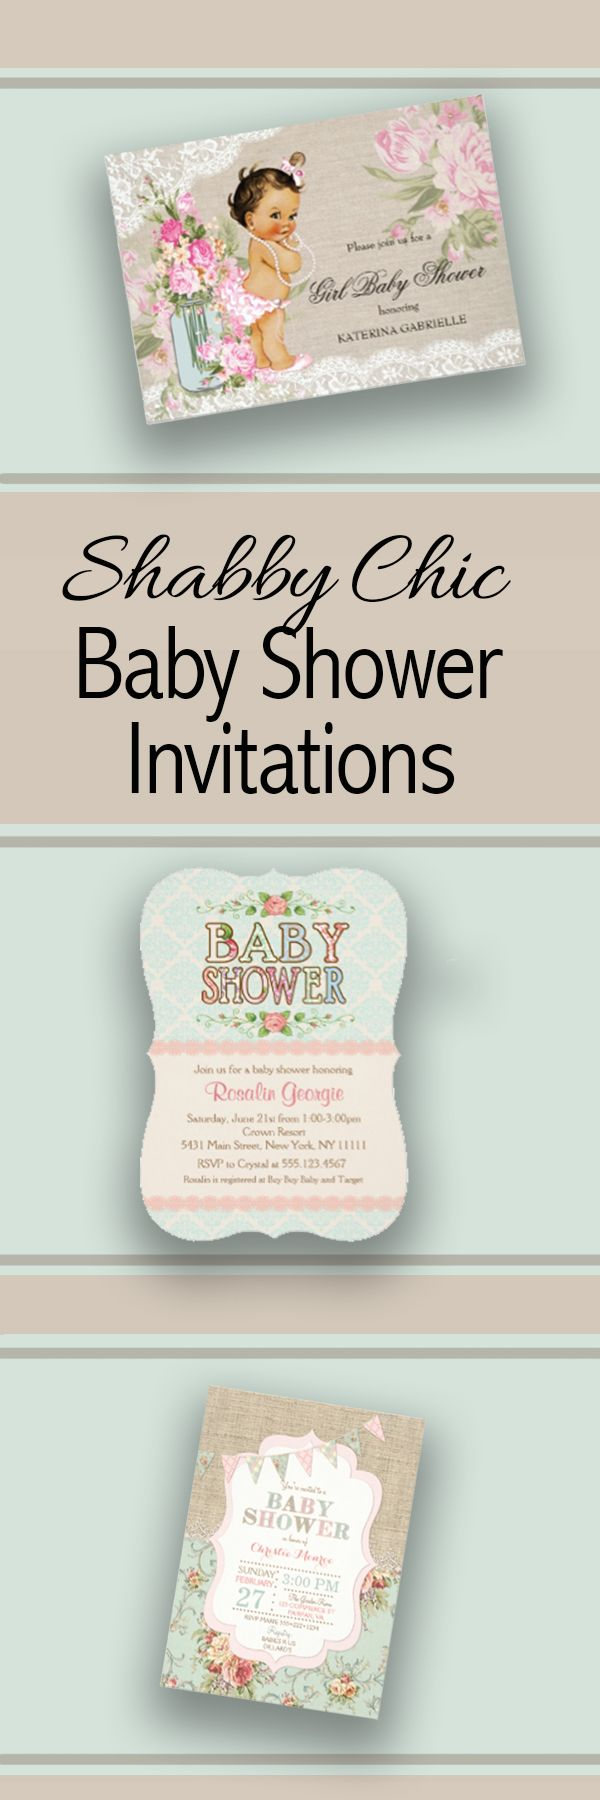 Large selection of beautiful shabby chic baby shower invitations. http://www.growingfamilycelebrations.com/2016/06/cute-shabby-chic-baby-shower-invitations.html